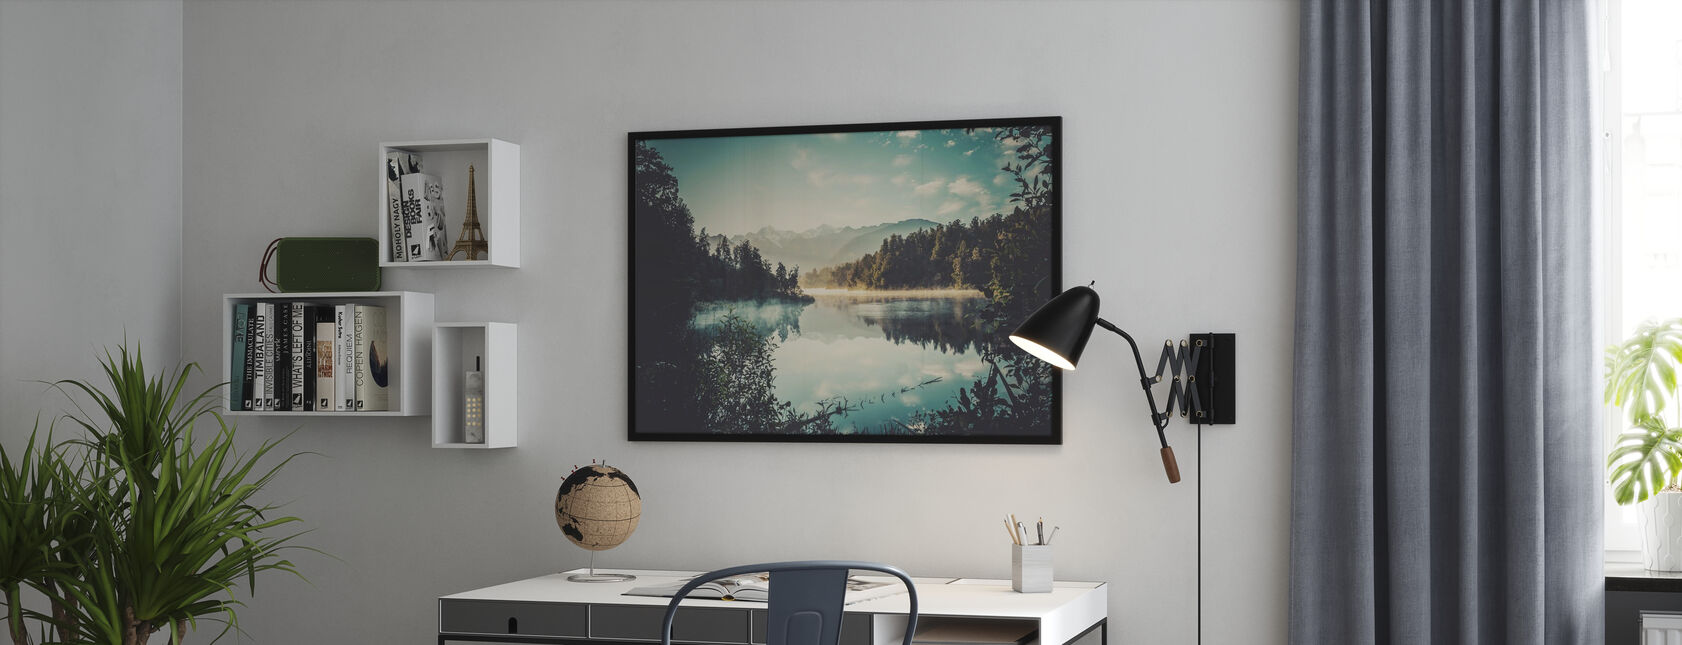 Lake Matheson at Sunrise - Poster - Office